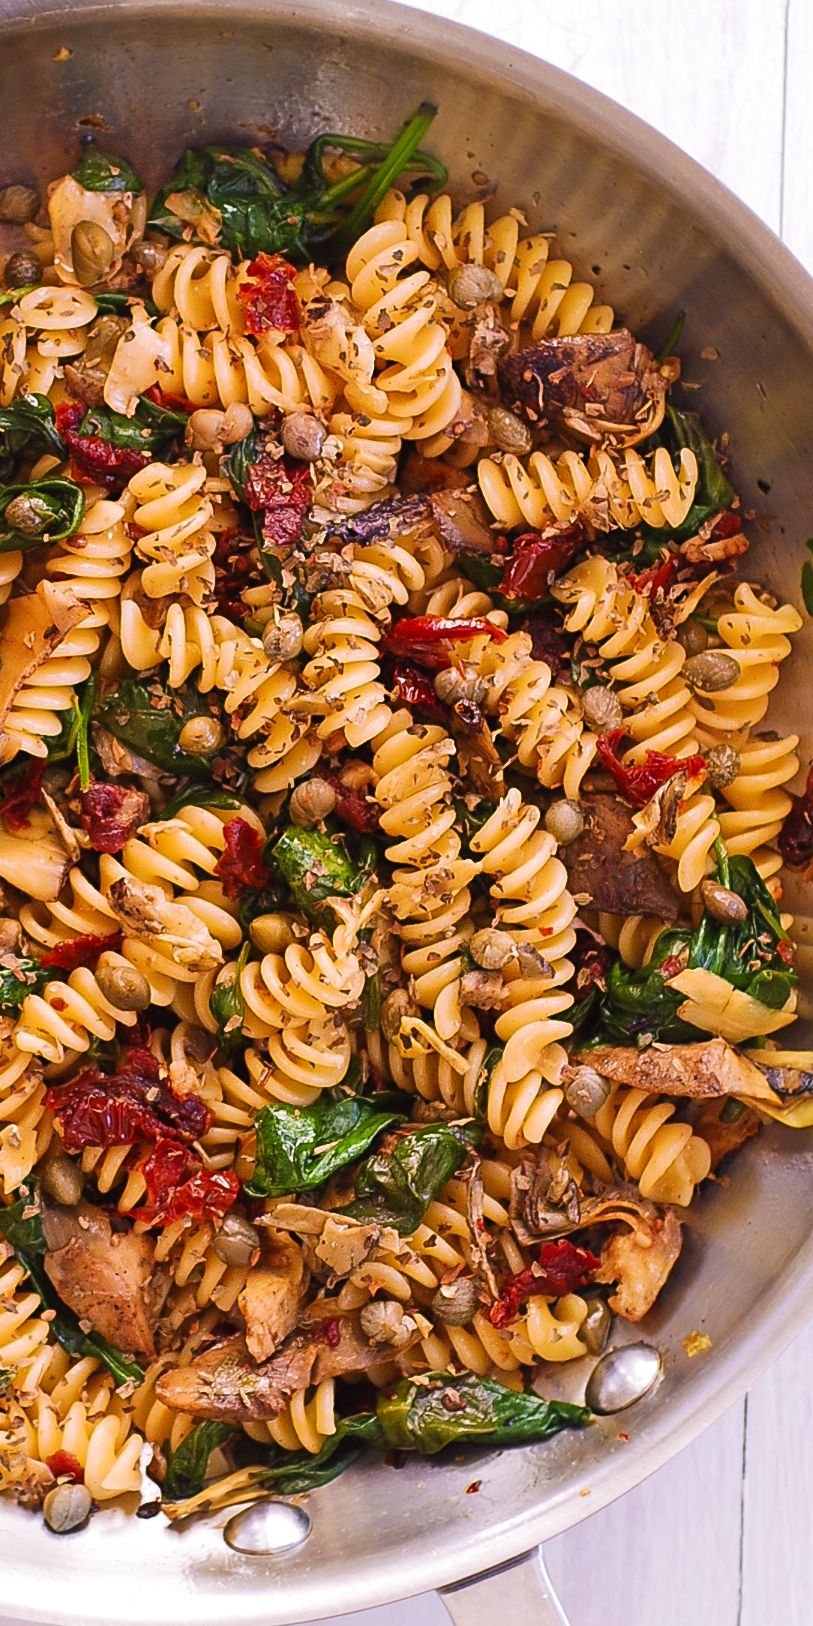 Fusilli Pasta With Veggies And Pine Nuts Best Pasta Dishes Vegetarian Pasta Dishes Fusilli Pasta